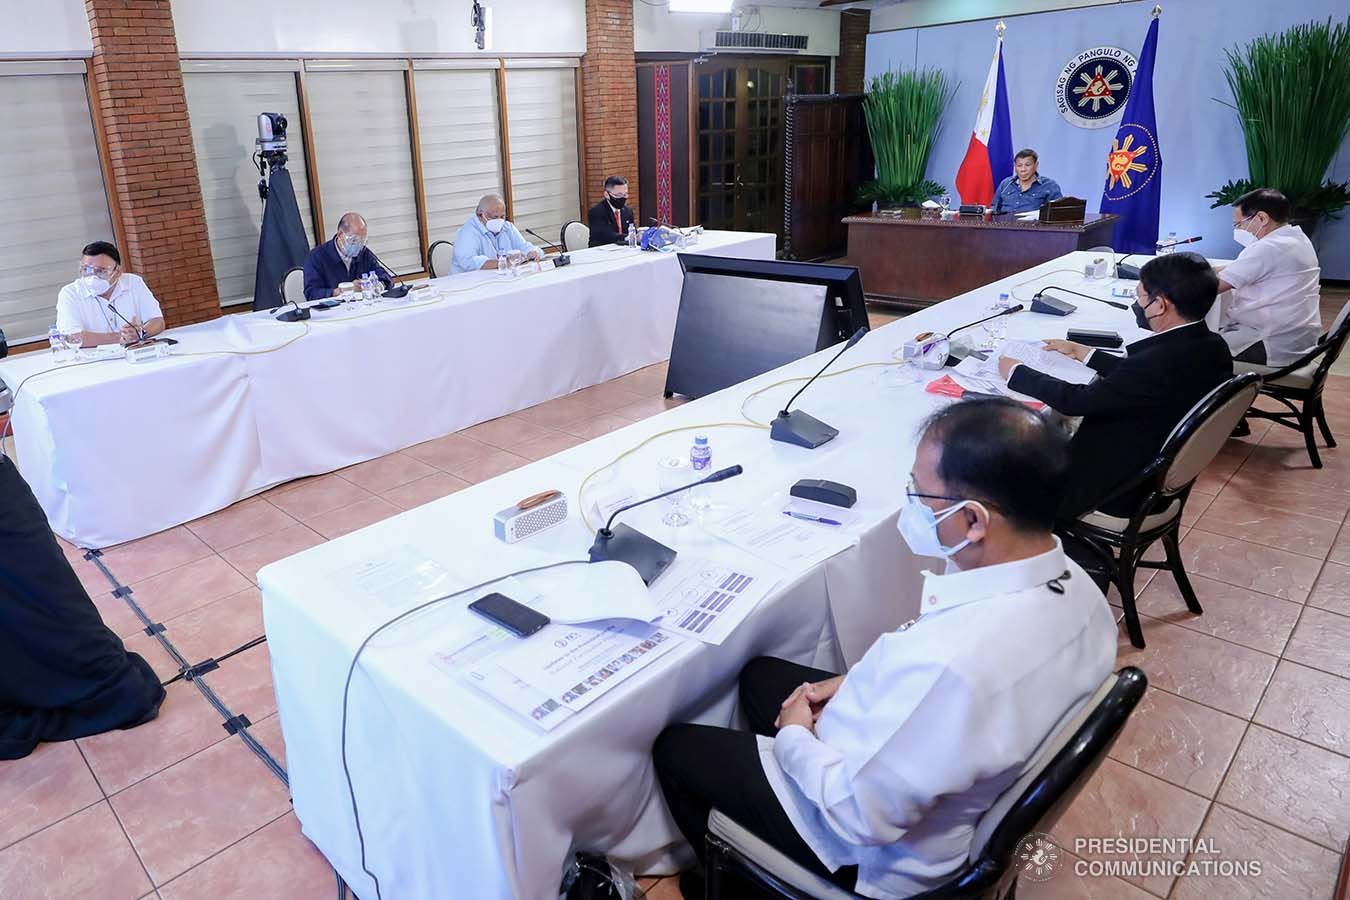 President Rodrigo Roa Duterte presides over a meeting with the Inter-Agency Task Force on the Emerging Infectious Diseases (IATF-EID) core members prior to his talk to the people at the Malacañang Golf (Malago) Clubhouse in Malacañang Park, Manila on May 26, 2021. RICHARD MADELO/ PRESIDENTIAL PHOTO